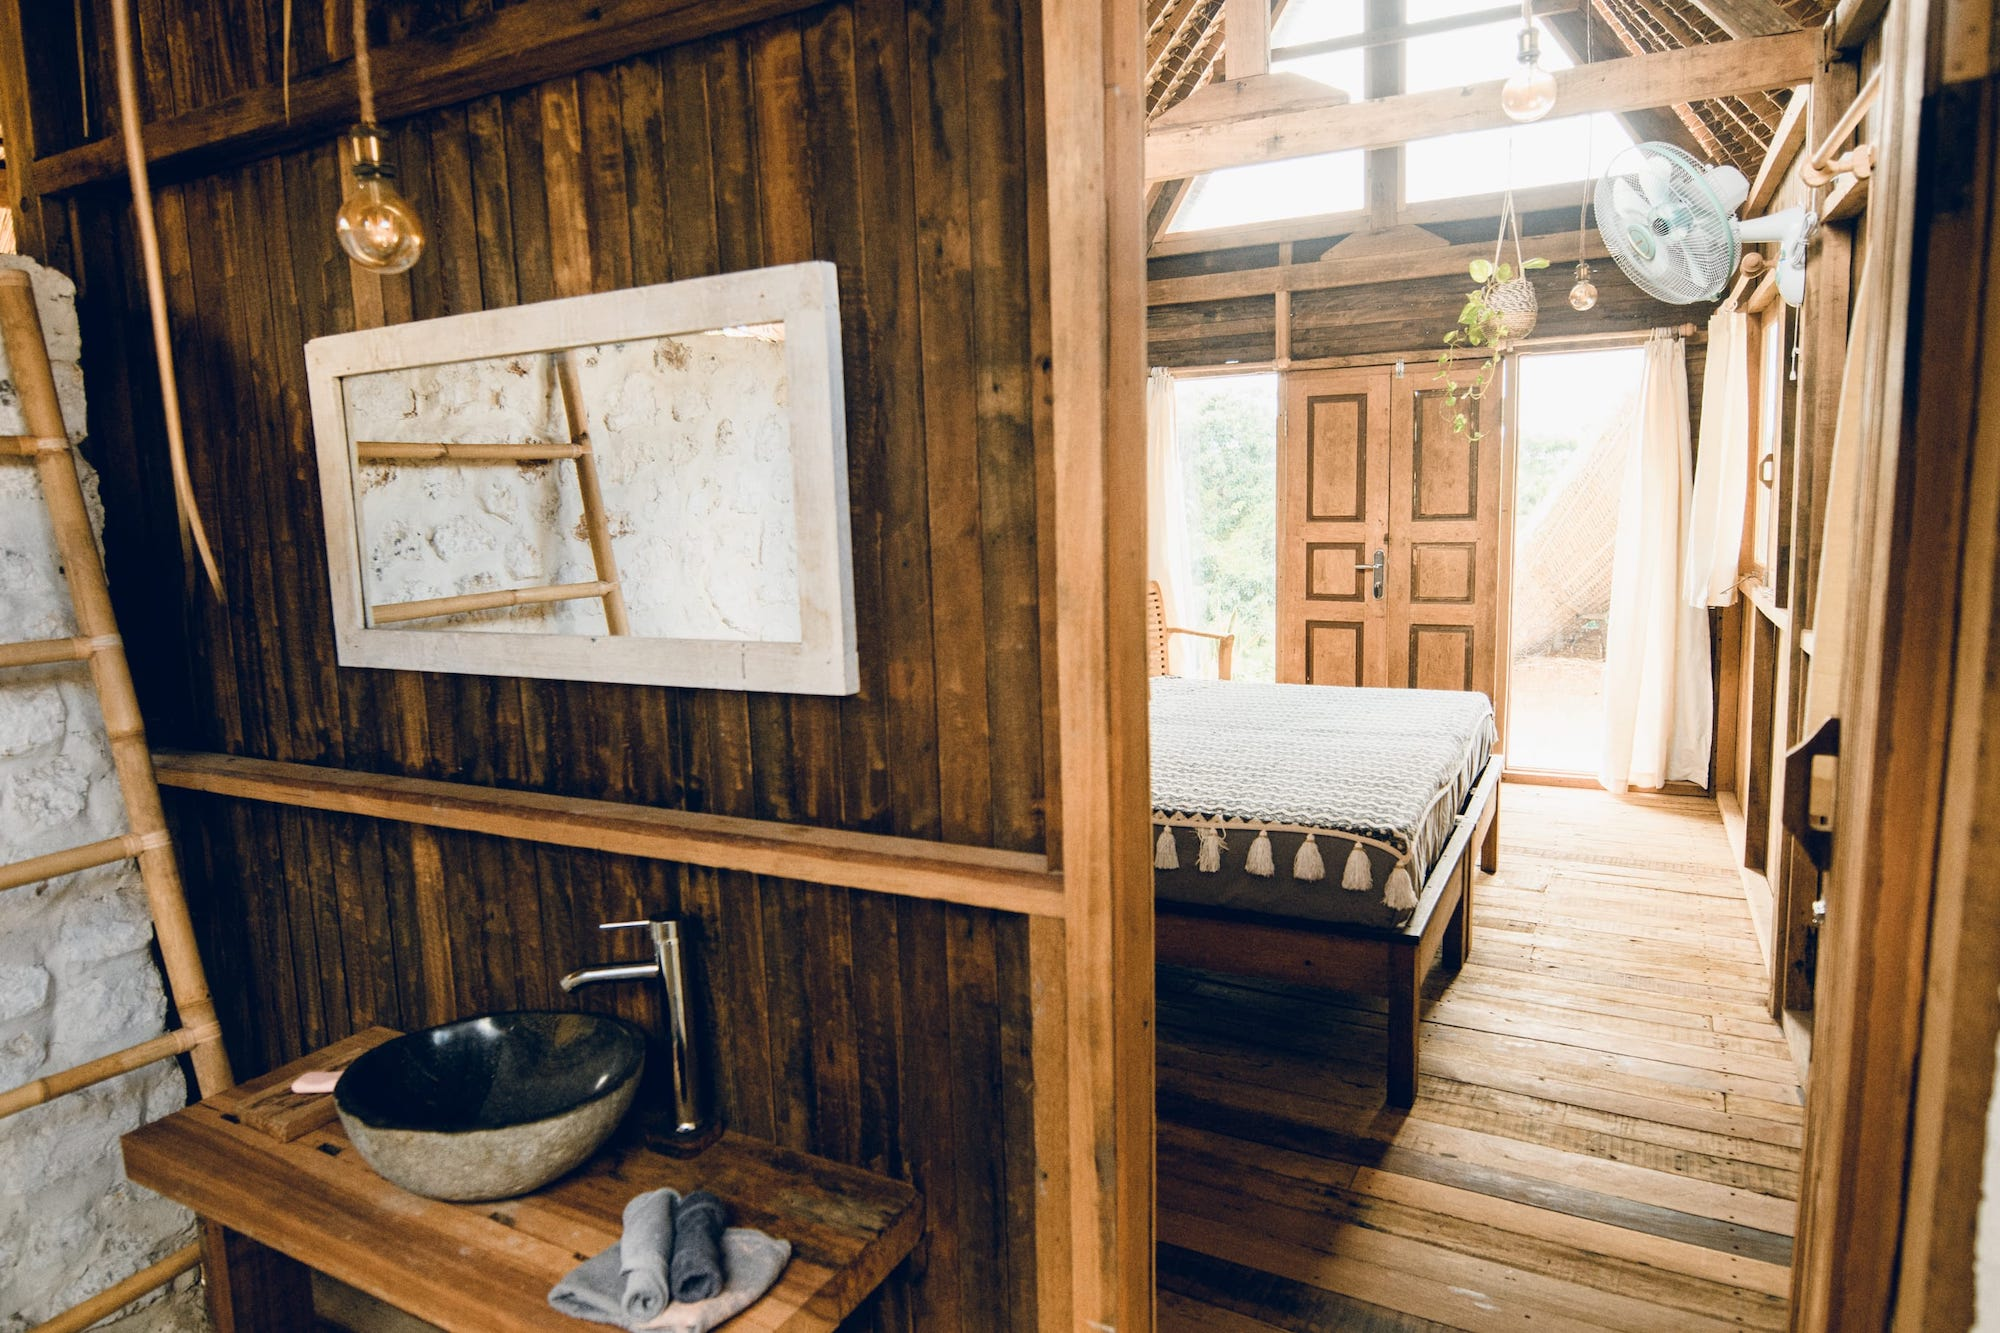 hut bathroom.jpg